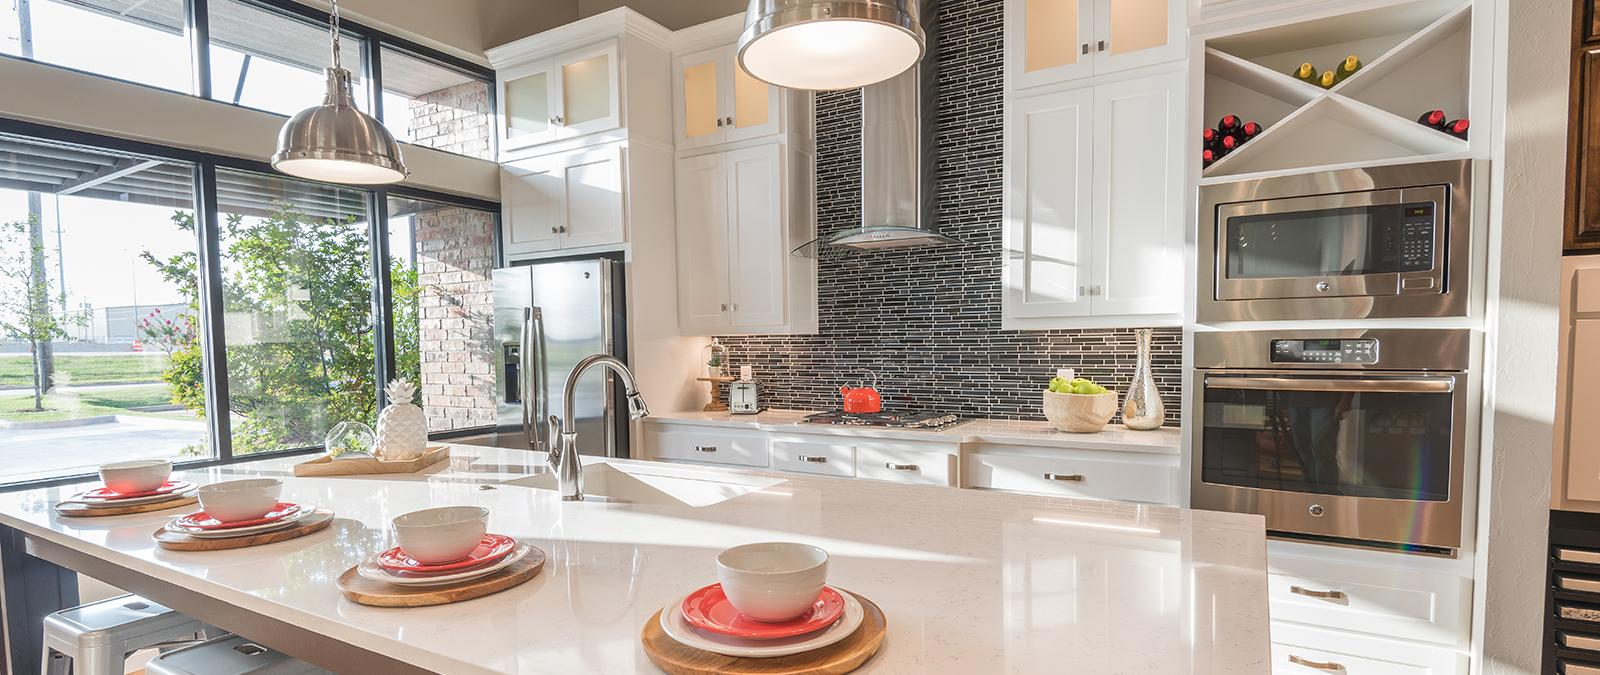 home builders in okc mashburn faires new homes okc previous next